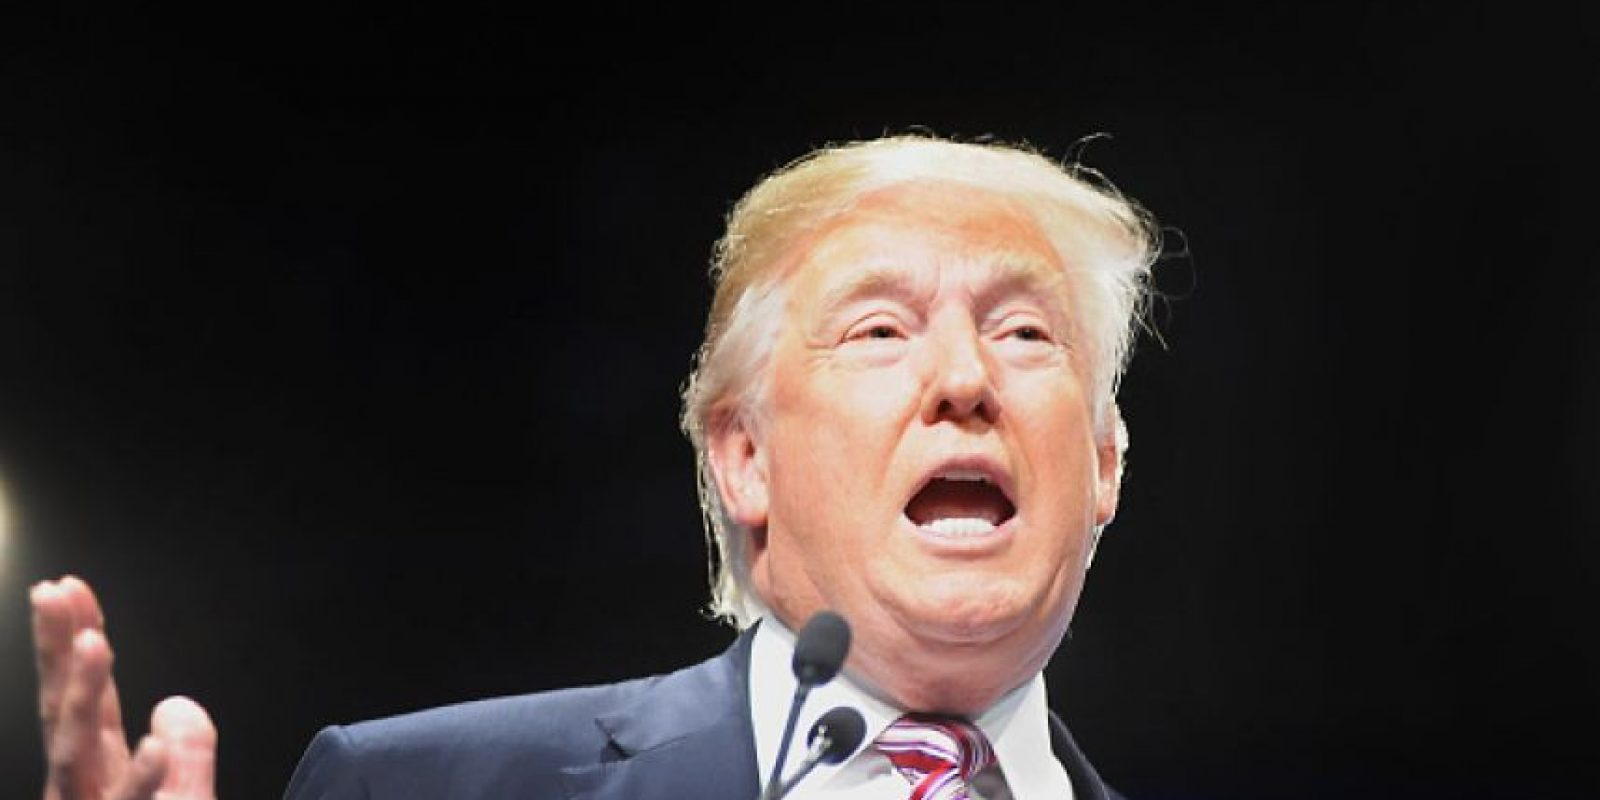 ¿Que tan millonario es Donald Trump? Foto: Getty Images